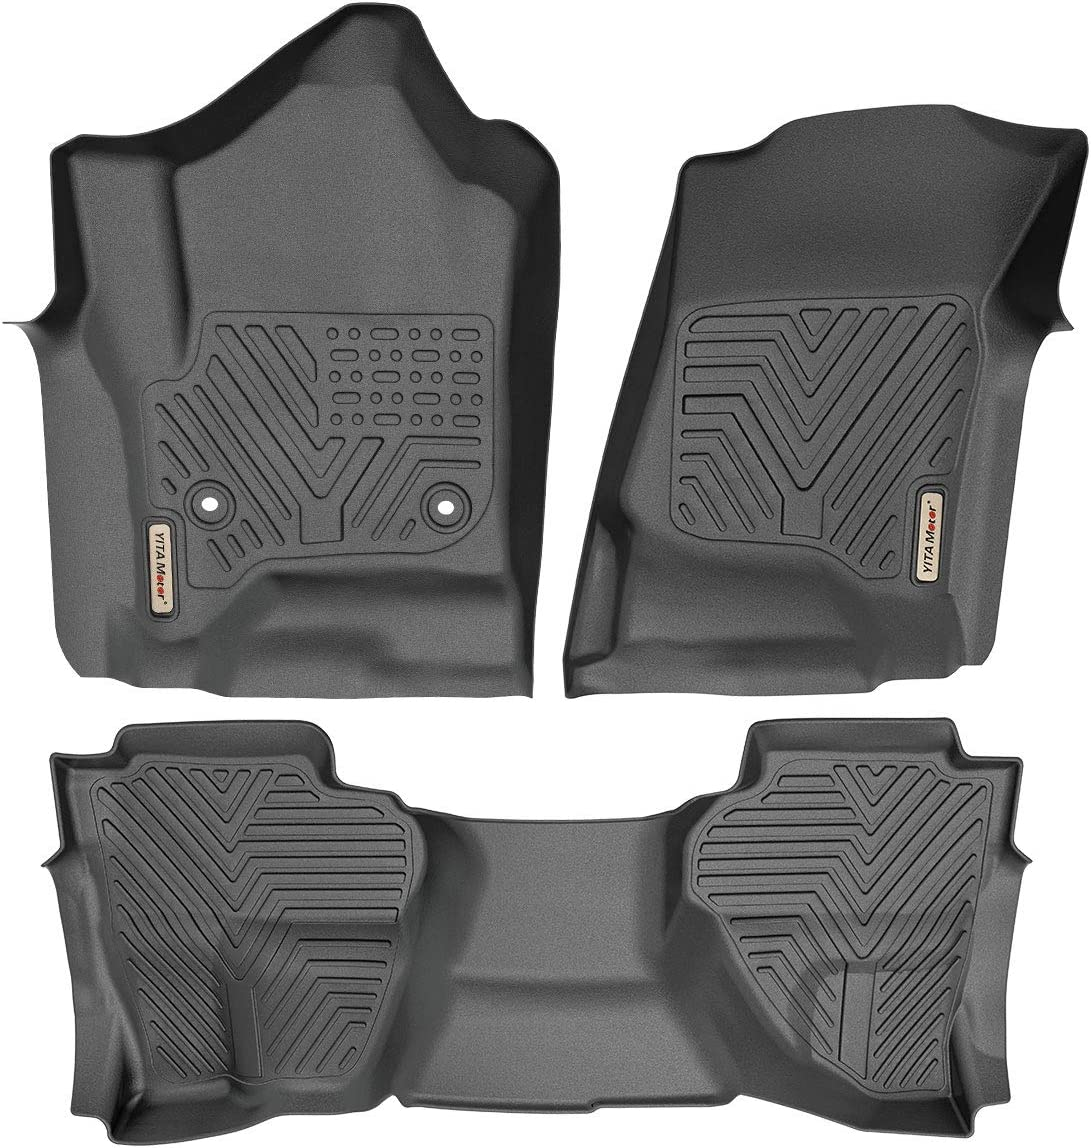 YITAMOTOR Floor Mats Compatible with 2014-2018 Silverado//Sierra 1500 1st /& 2nd Row All Weather Protection 2015-2019 2500//3500 HD Custom Fit Floor Liners Double Cab Only